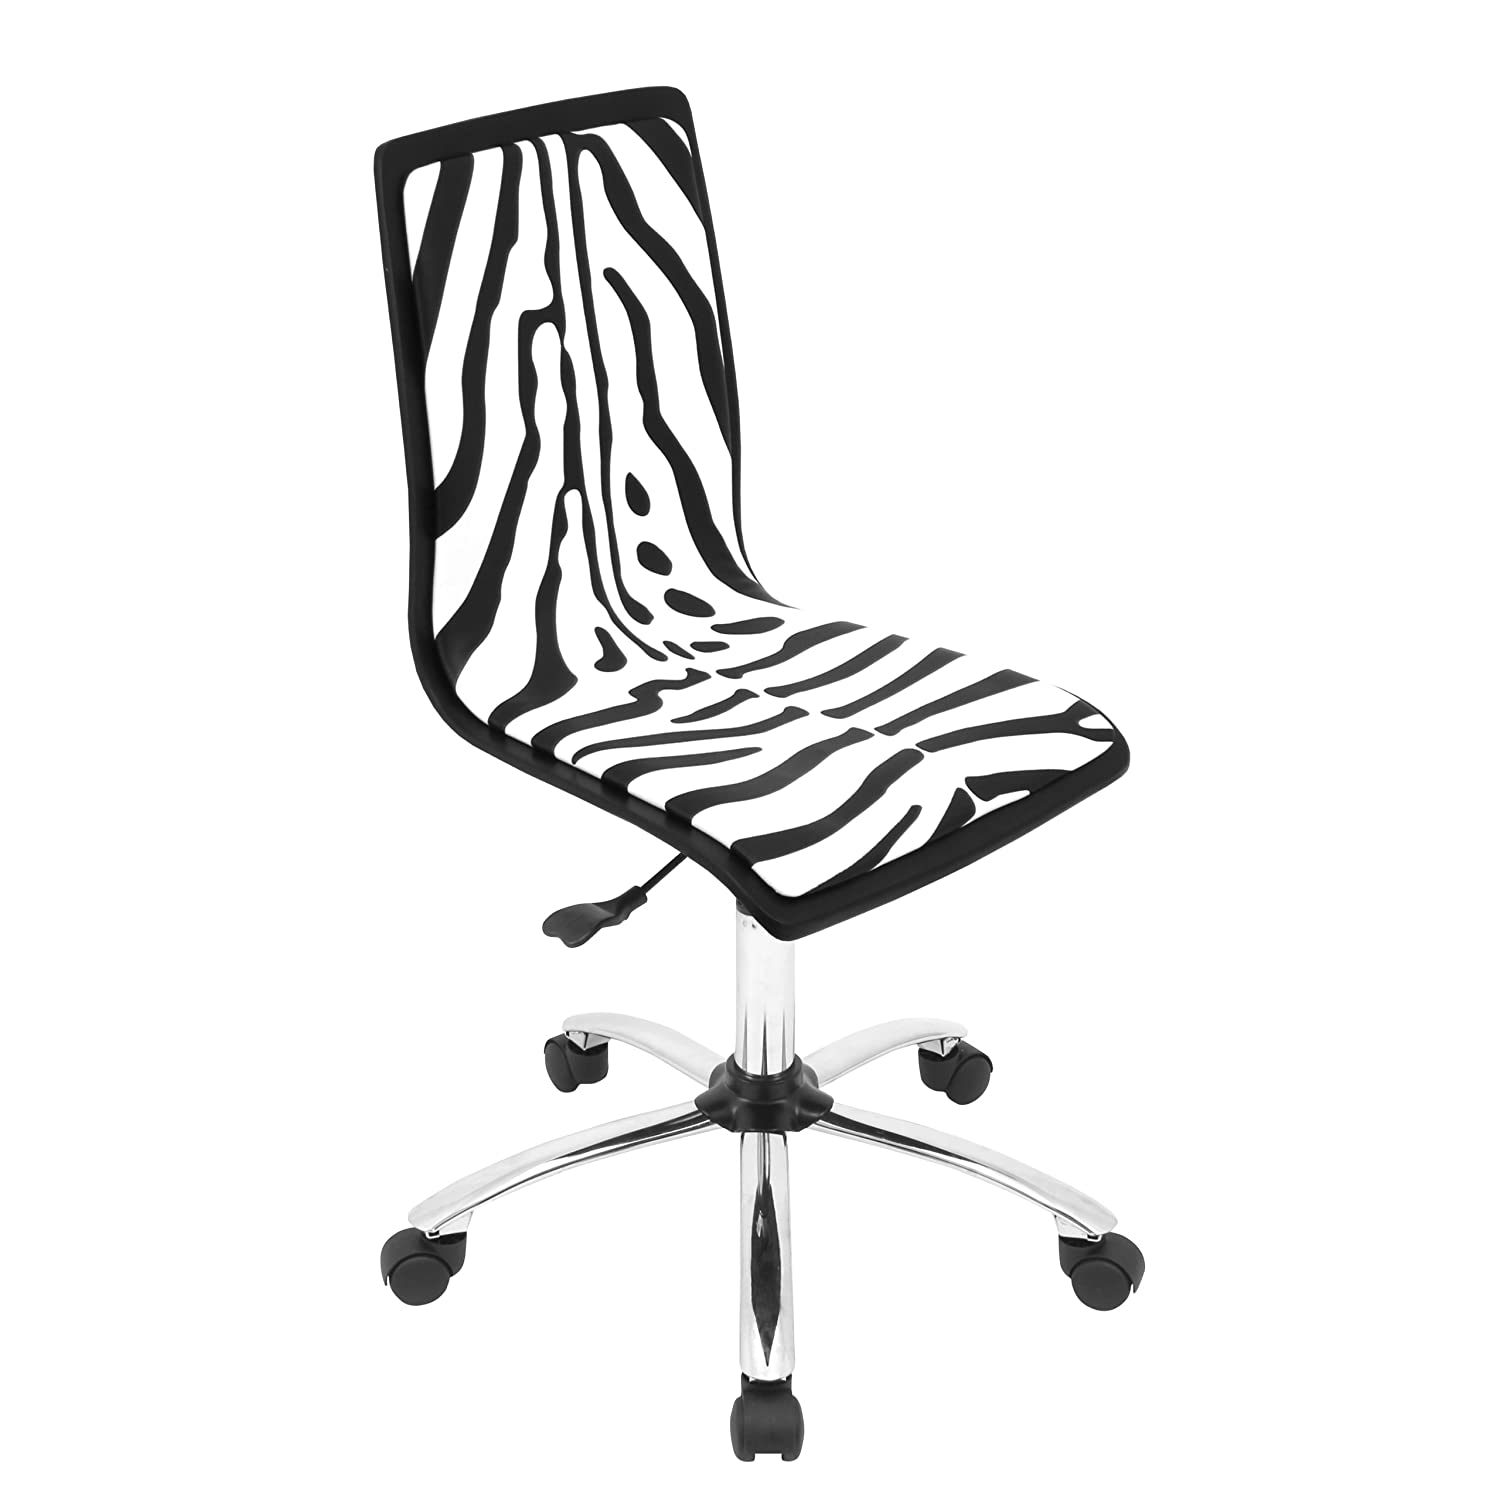 Black and white chair drawing - Black And White Chair Drawing 38